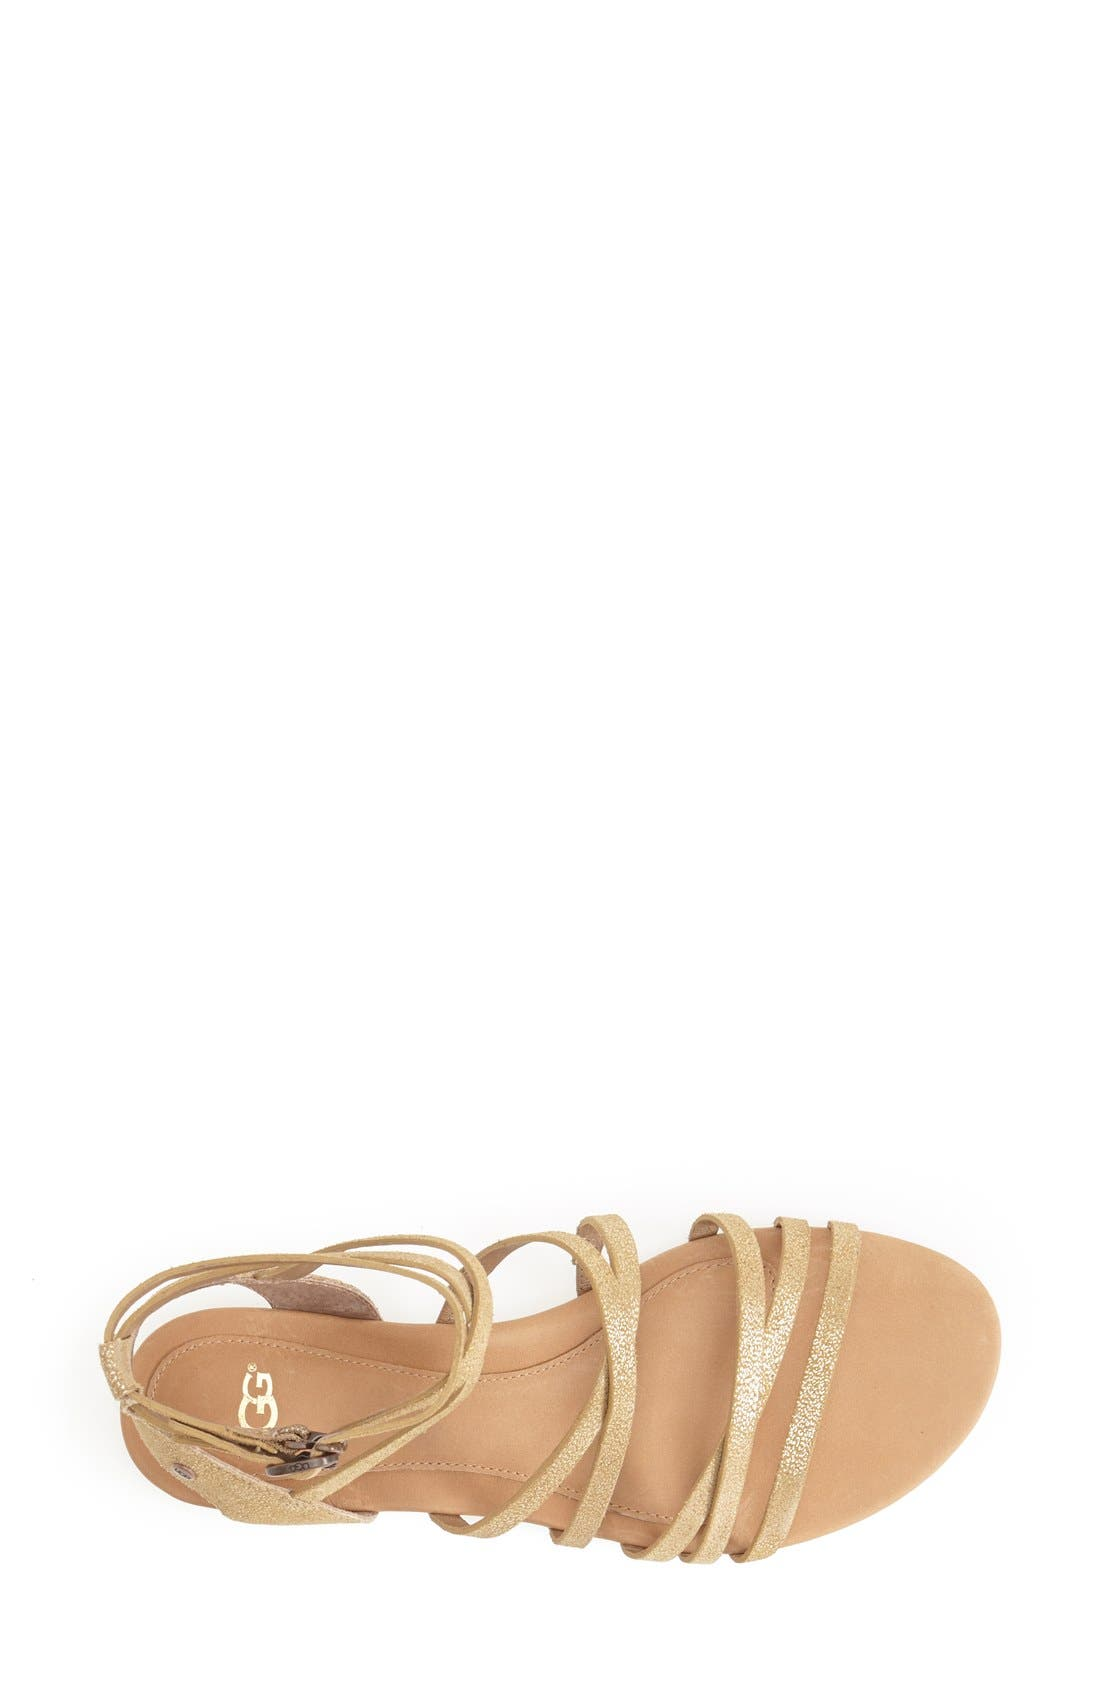 Alternate Image 3  - UGG® Australia 'Devie' Metallic Leather Sandal (Women)